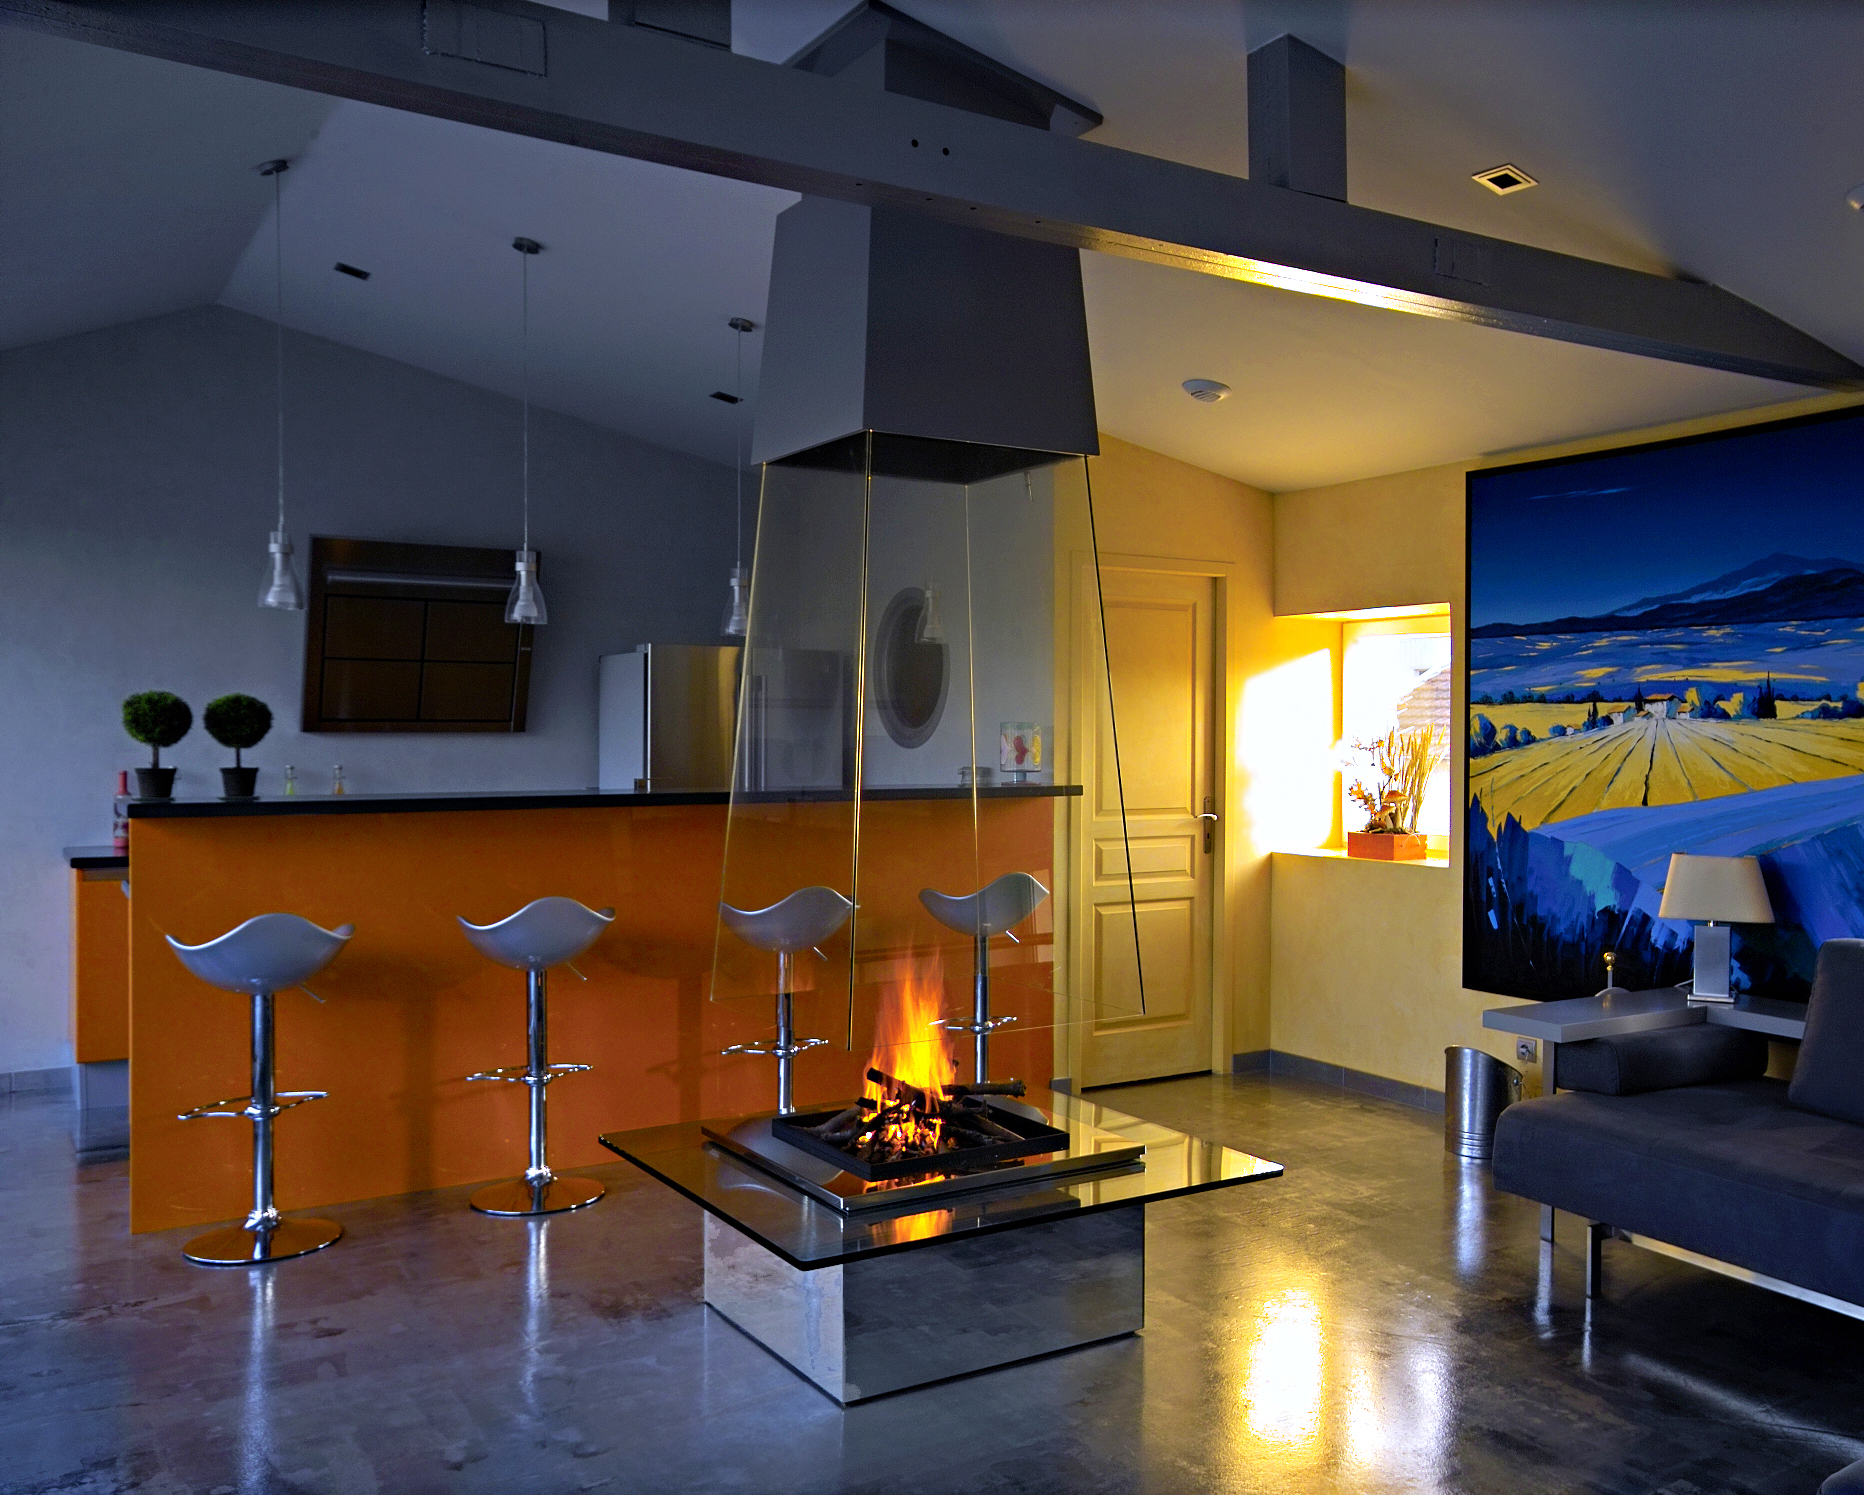 Pyramidal free hanging glass fireplace | BLOCH DESIGN | Archinect